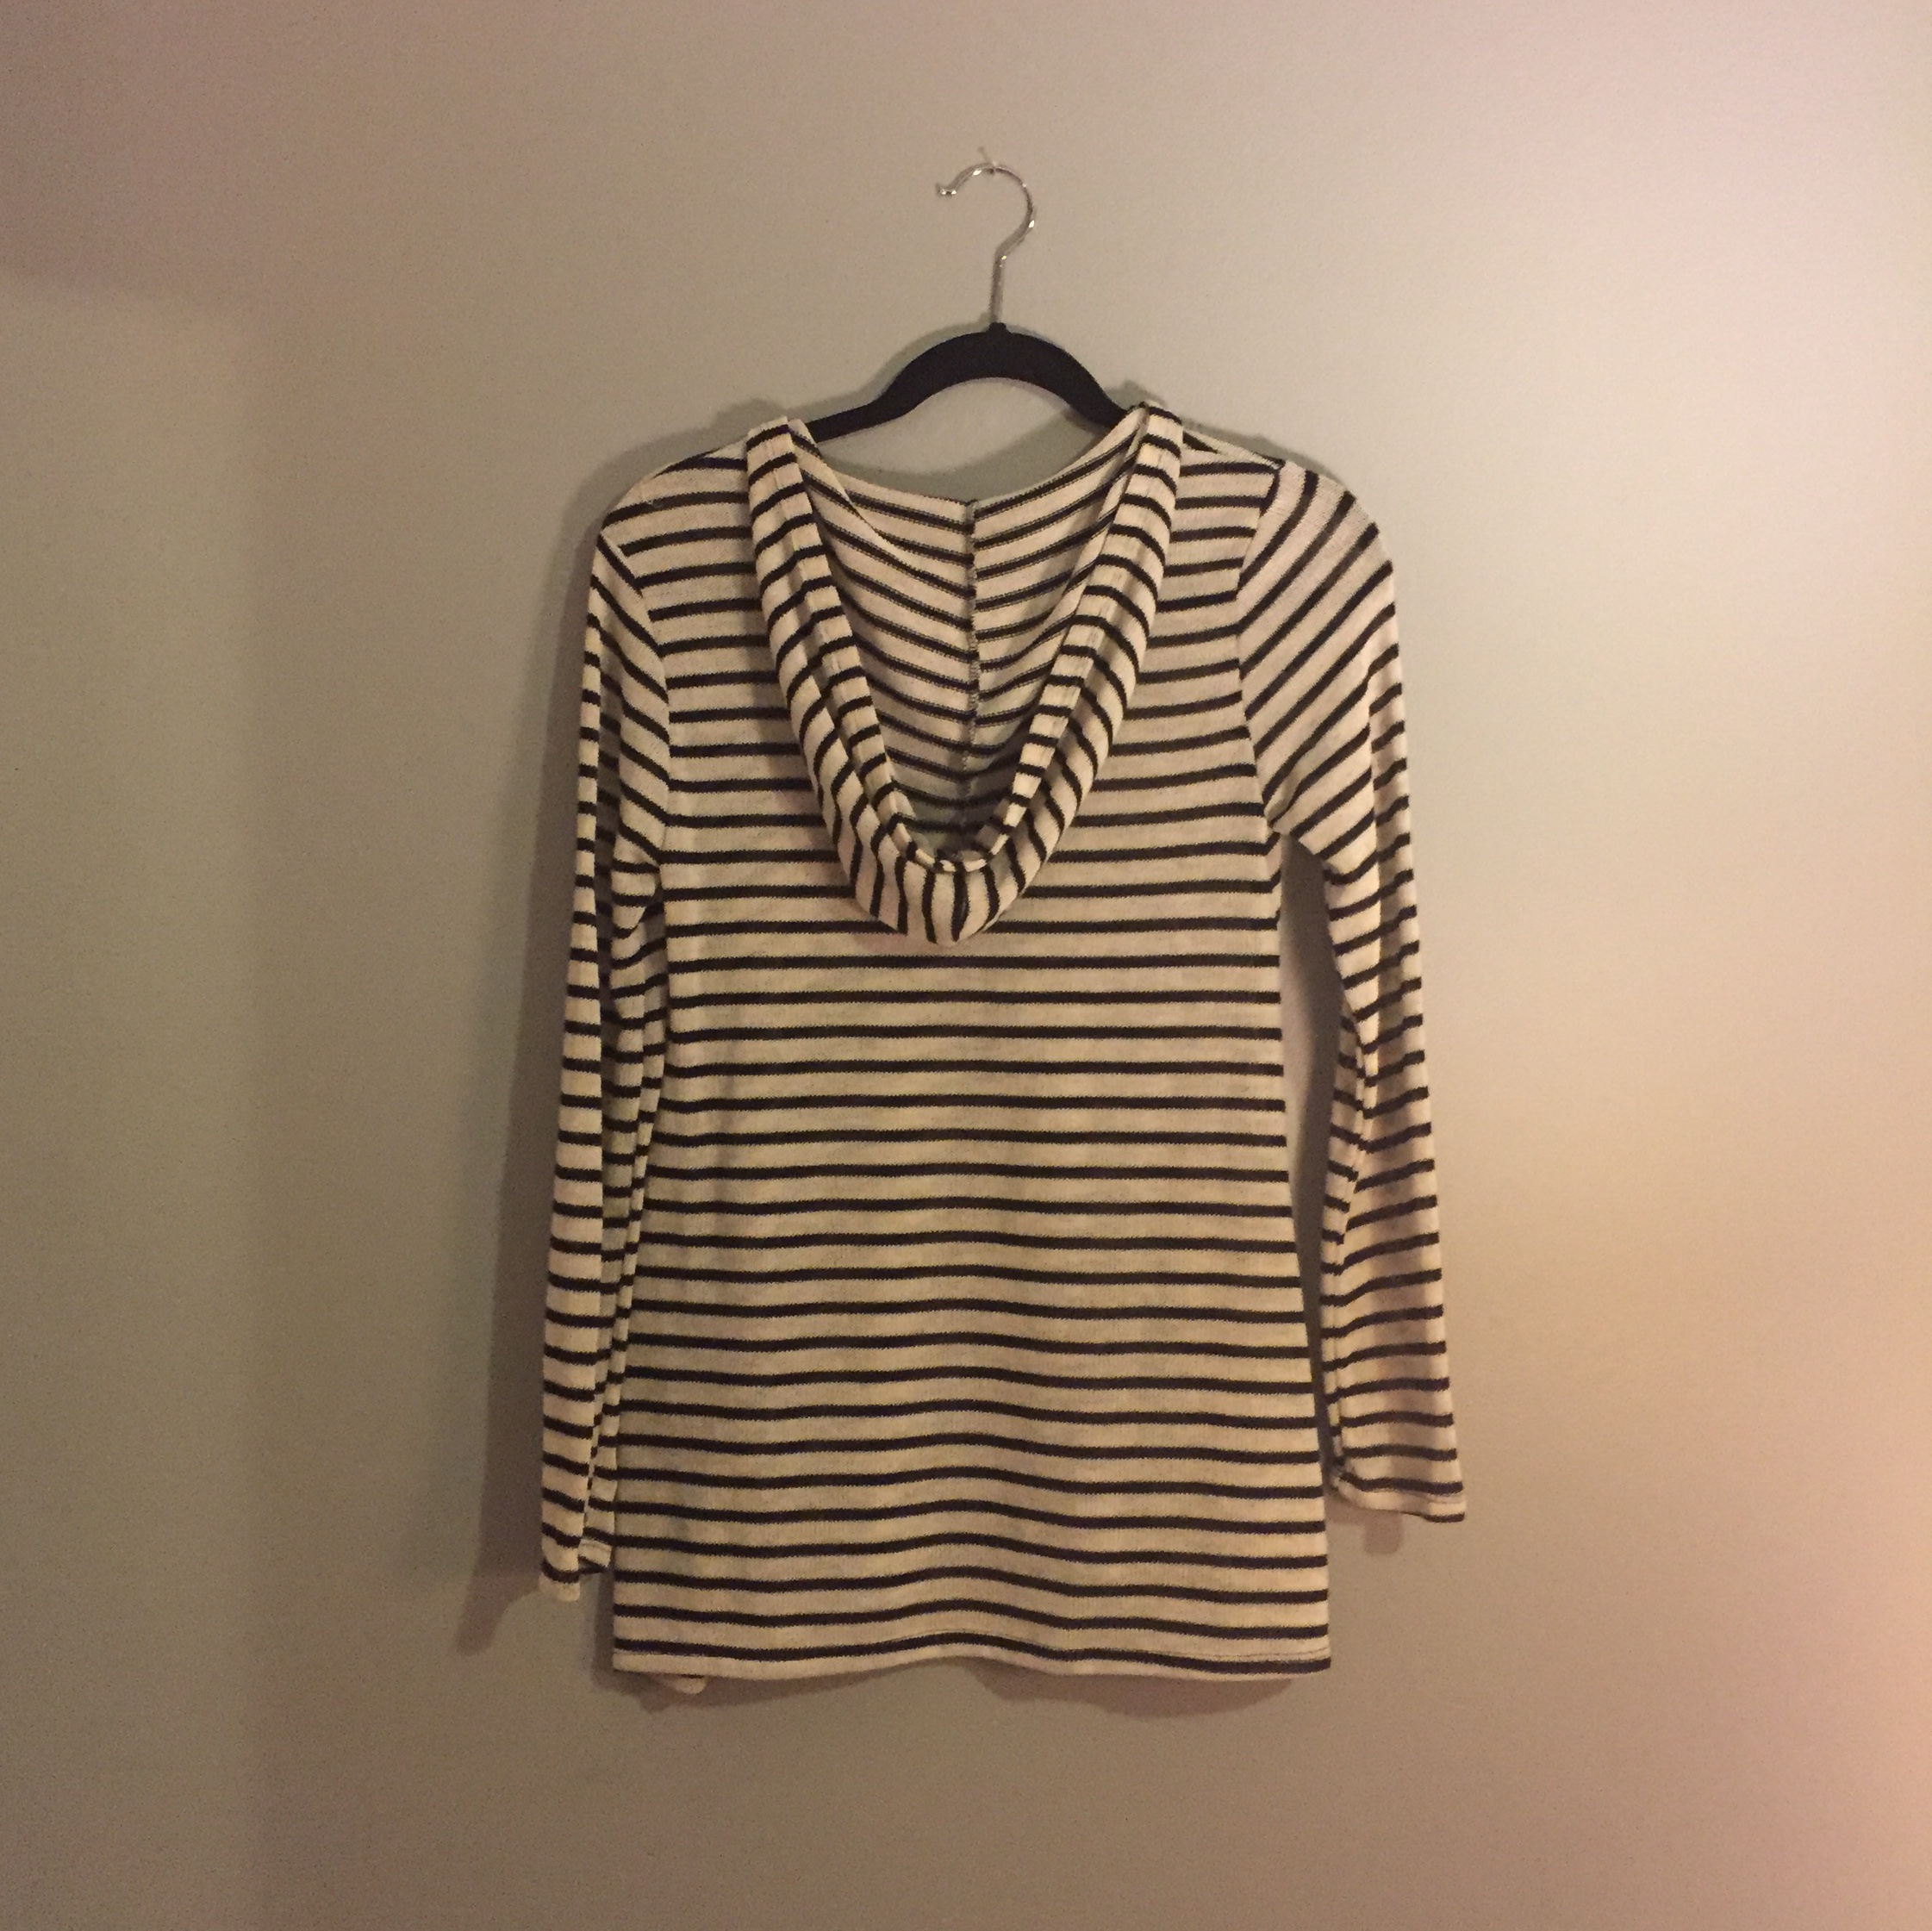 NEW BLACK /'GINGER G/' CASUAL TOP VARIOUS SIZES